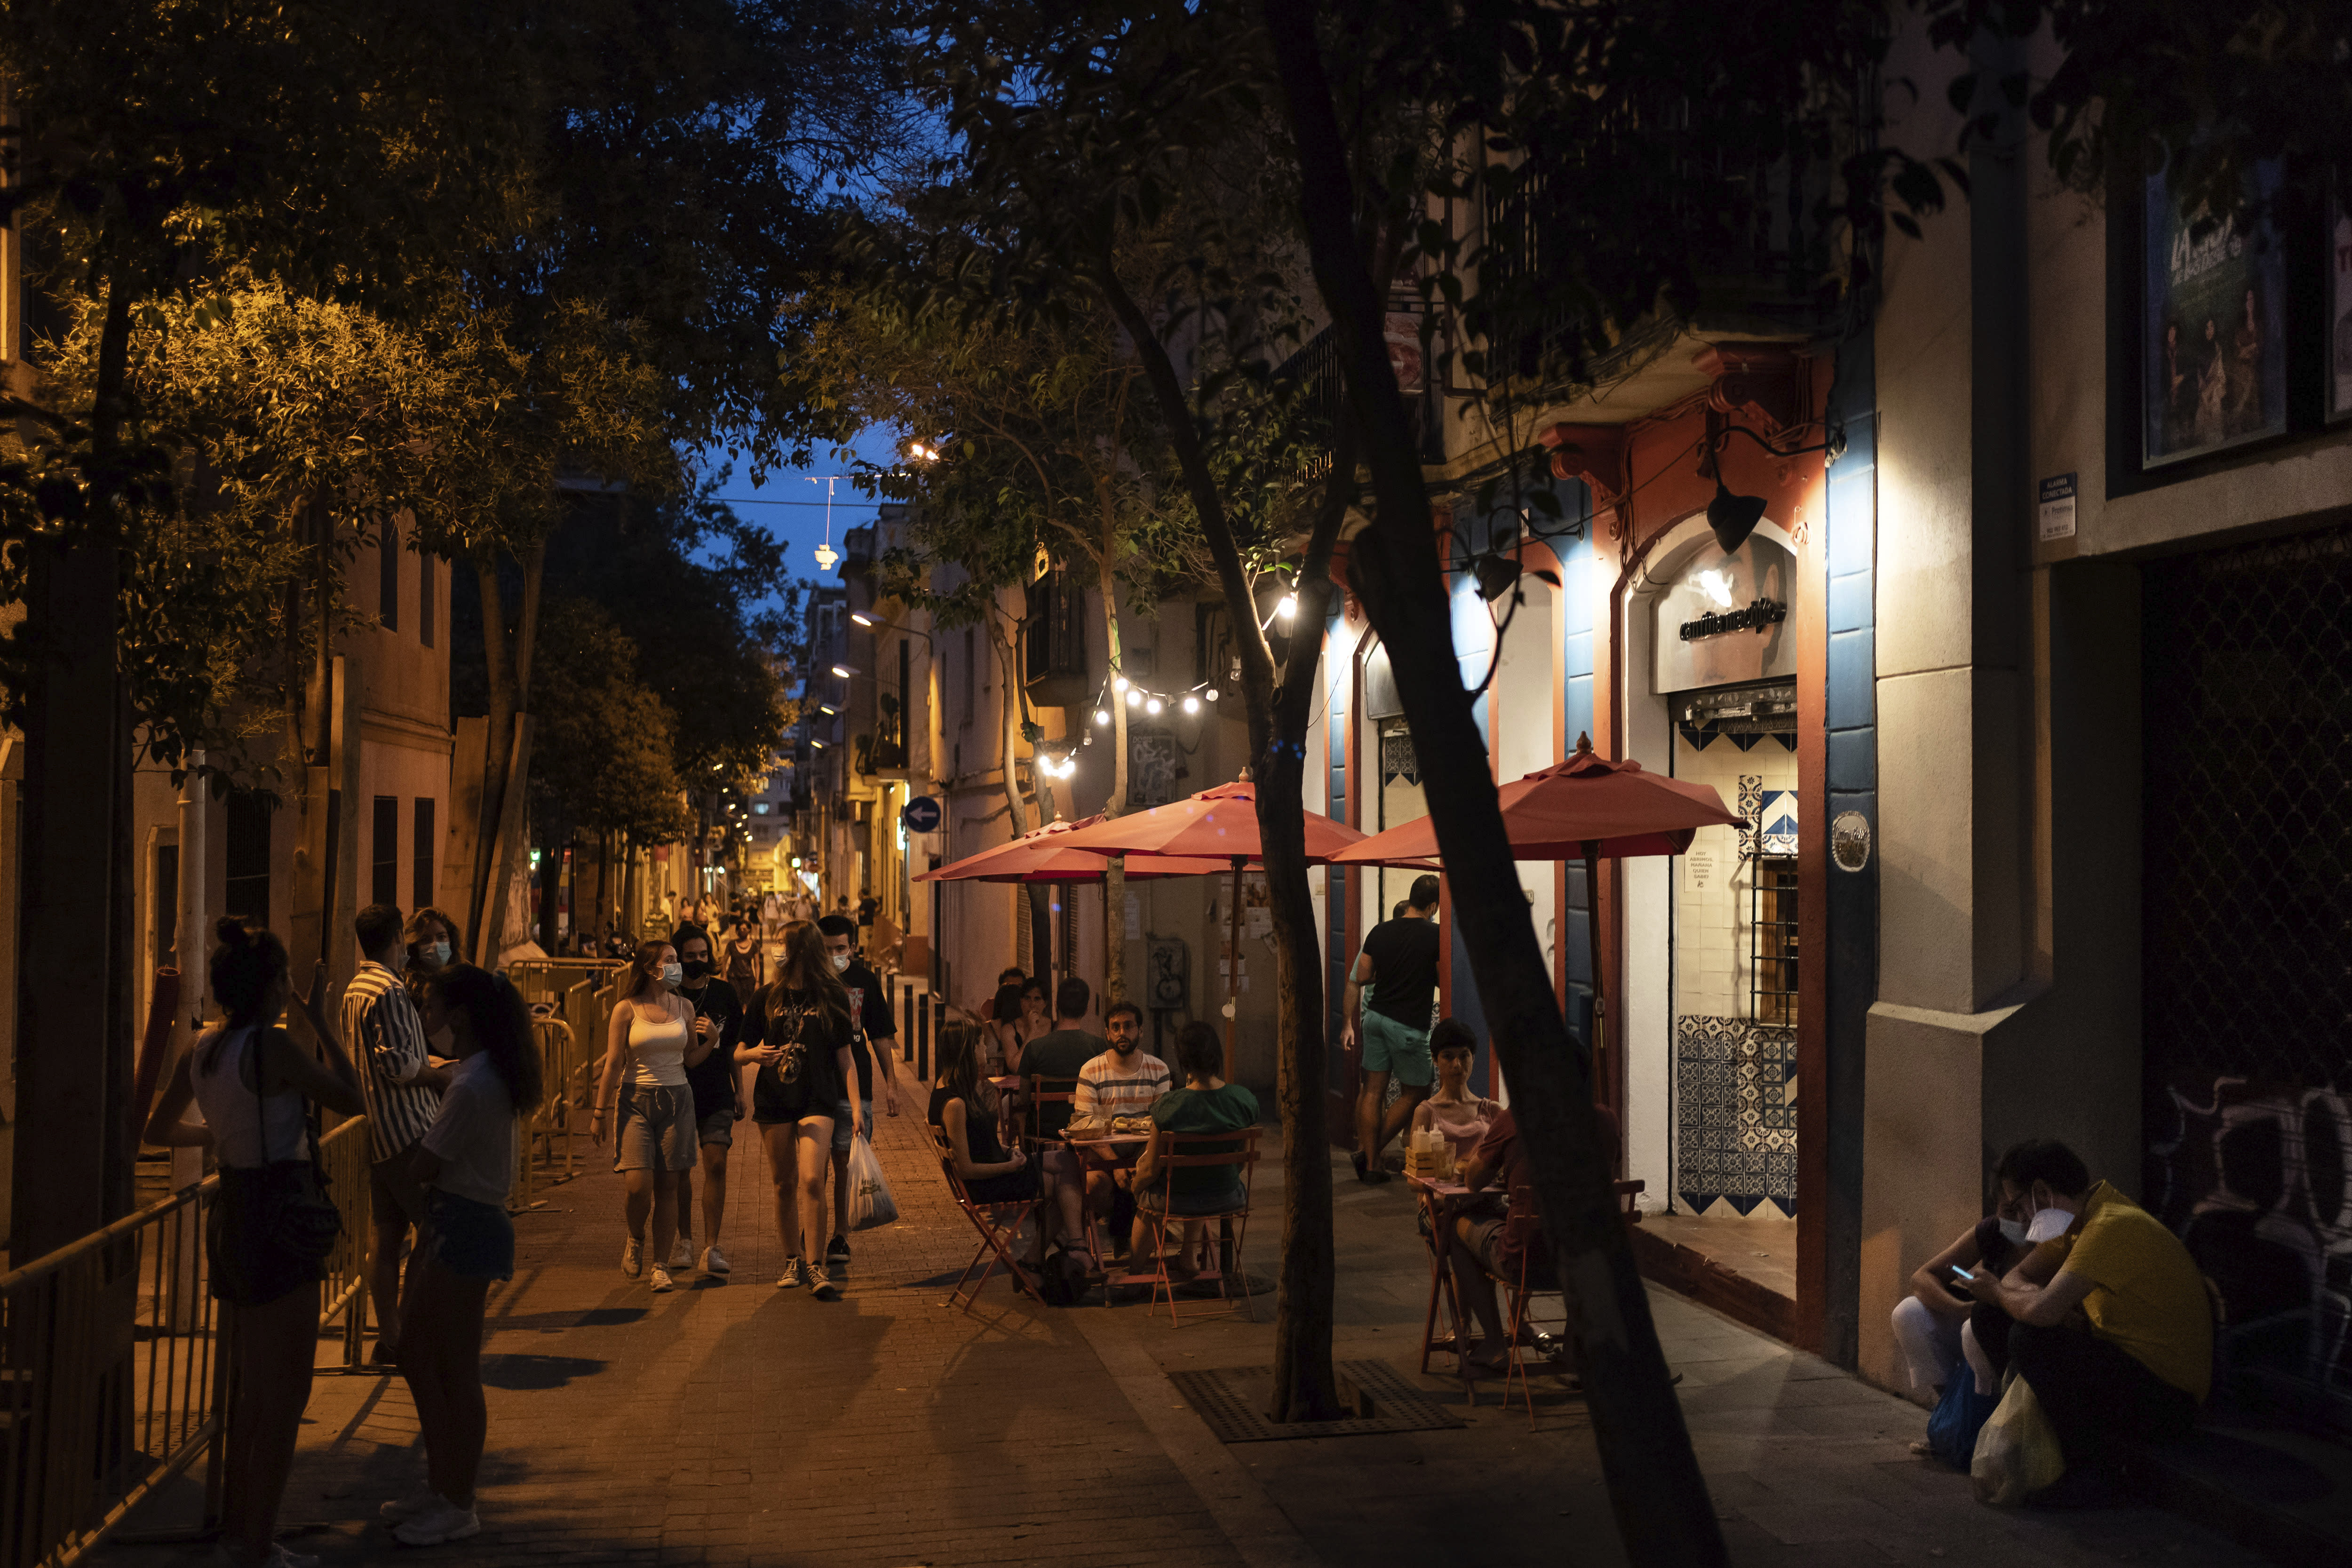 People gather outside a restaurant at night in Gracia neighborhood in Barcelona, Spain, Friday, July 24, 2020. Health authorities in the northeastern region of Catalonia have ordered nightclubs to be fully closed and bars and restaurant in Barcelona to shut down by midnight in an effort to stem the spread of the new coronavirus. (AP Photo/Felipe Dana)